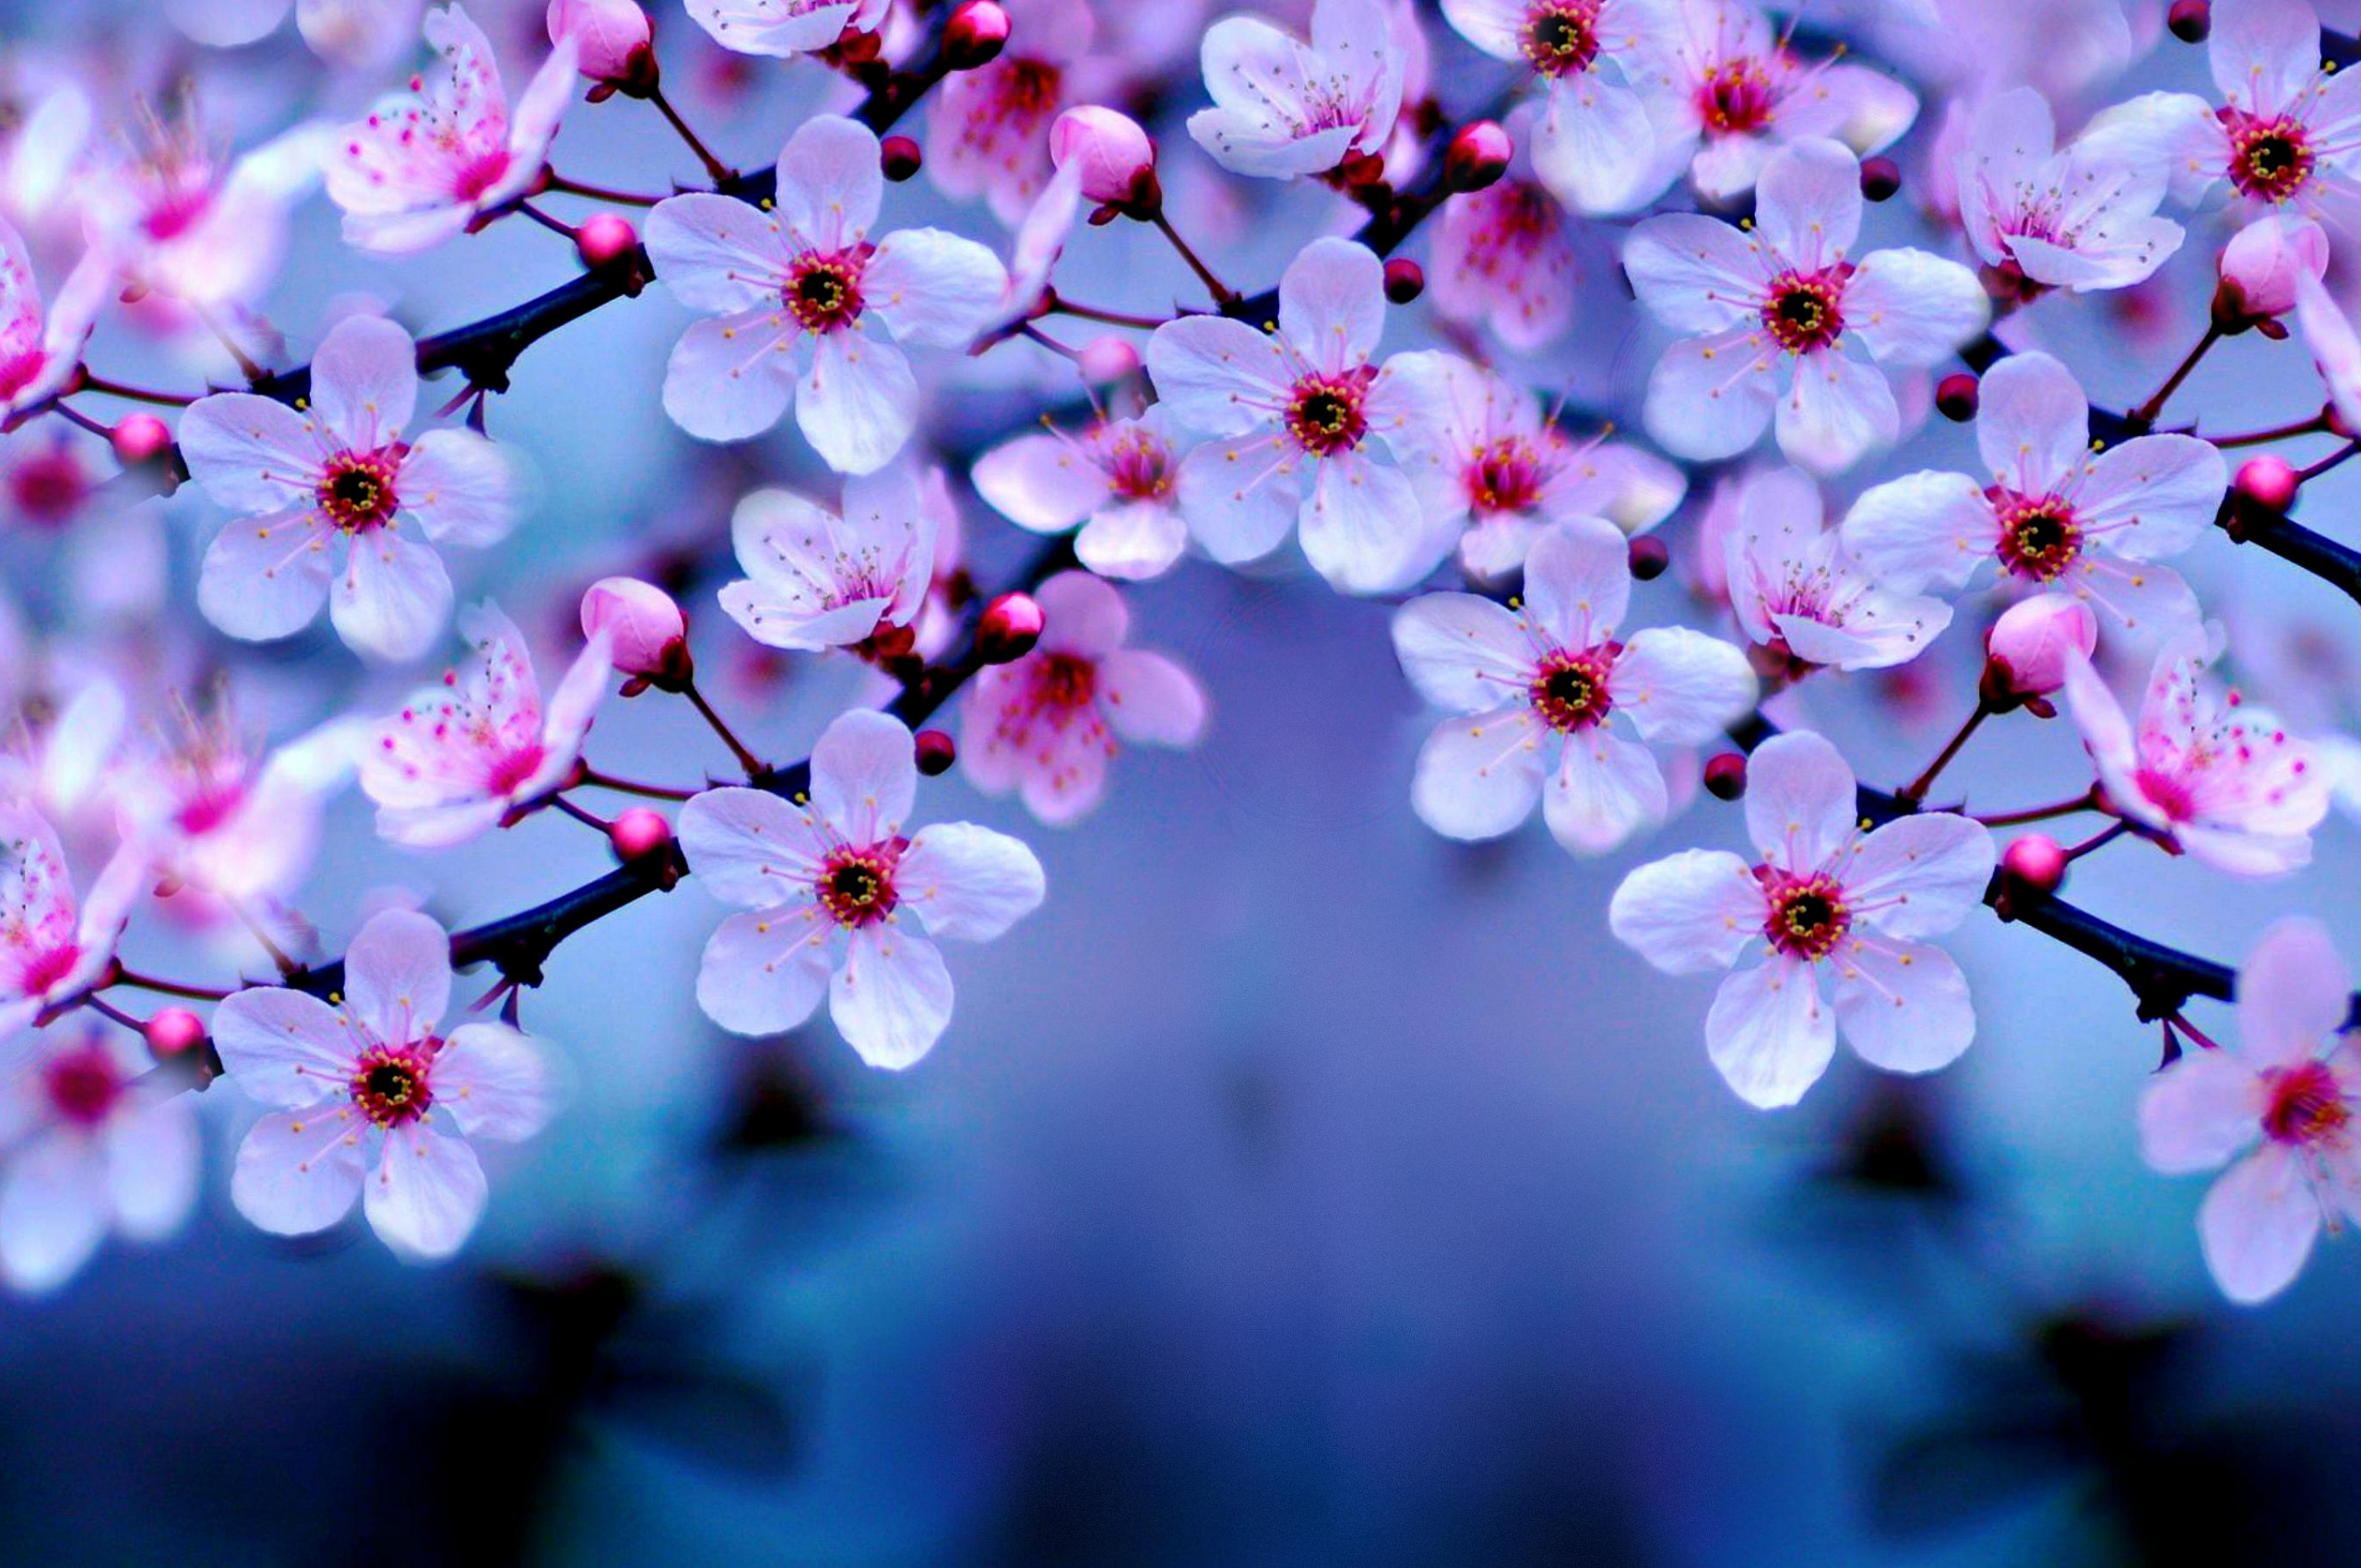 cherry blossom wallpaper - 1200×675